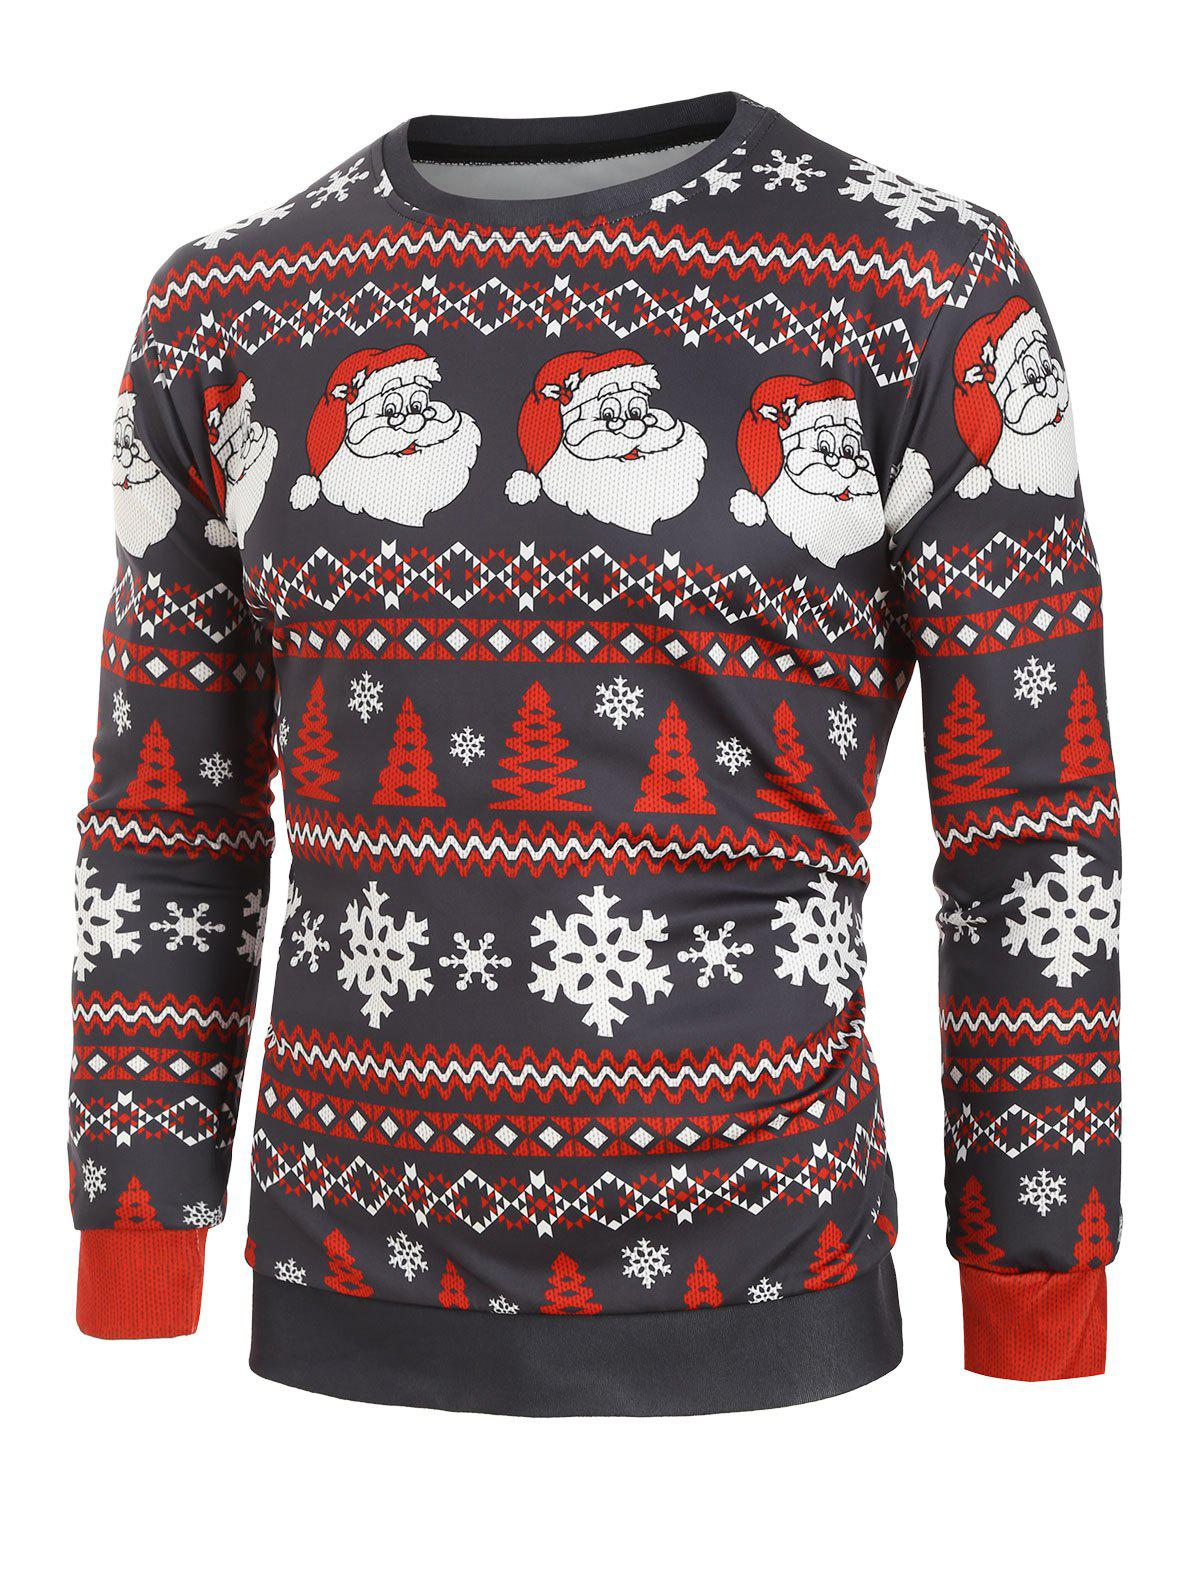 Christmas Santa Snowflake Print Casual Sweatshirt - multicolor 2XL